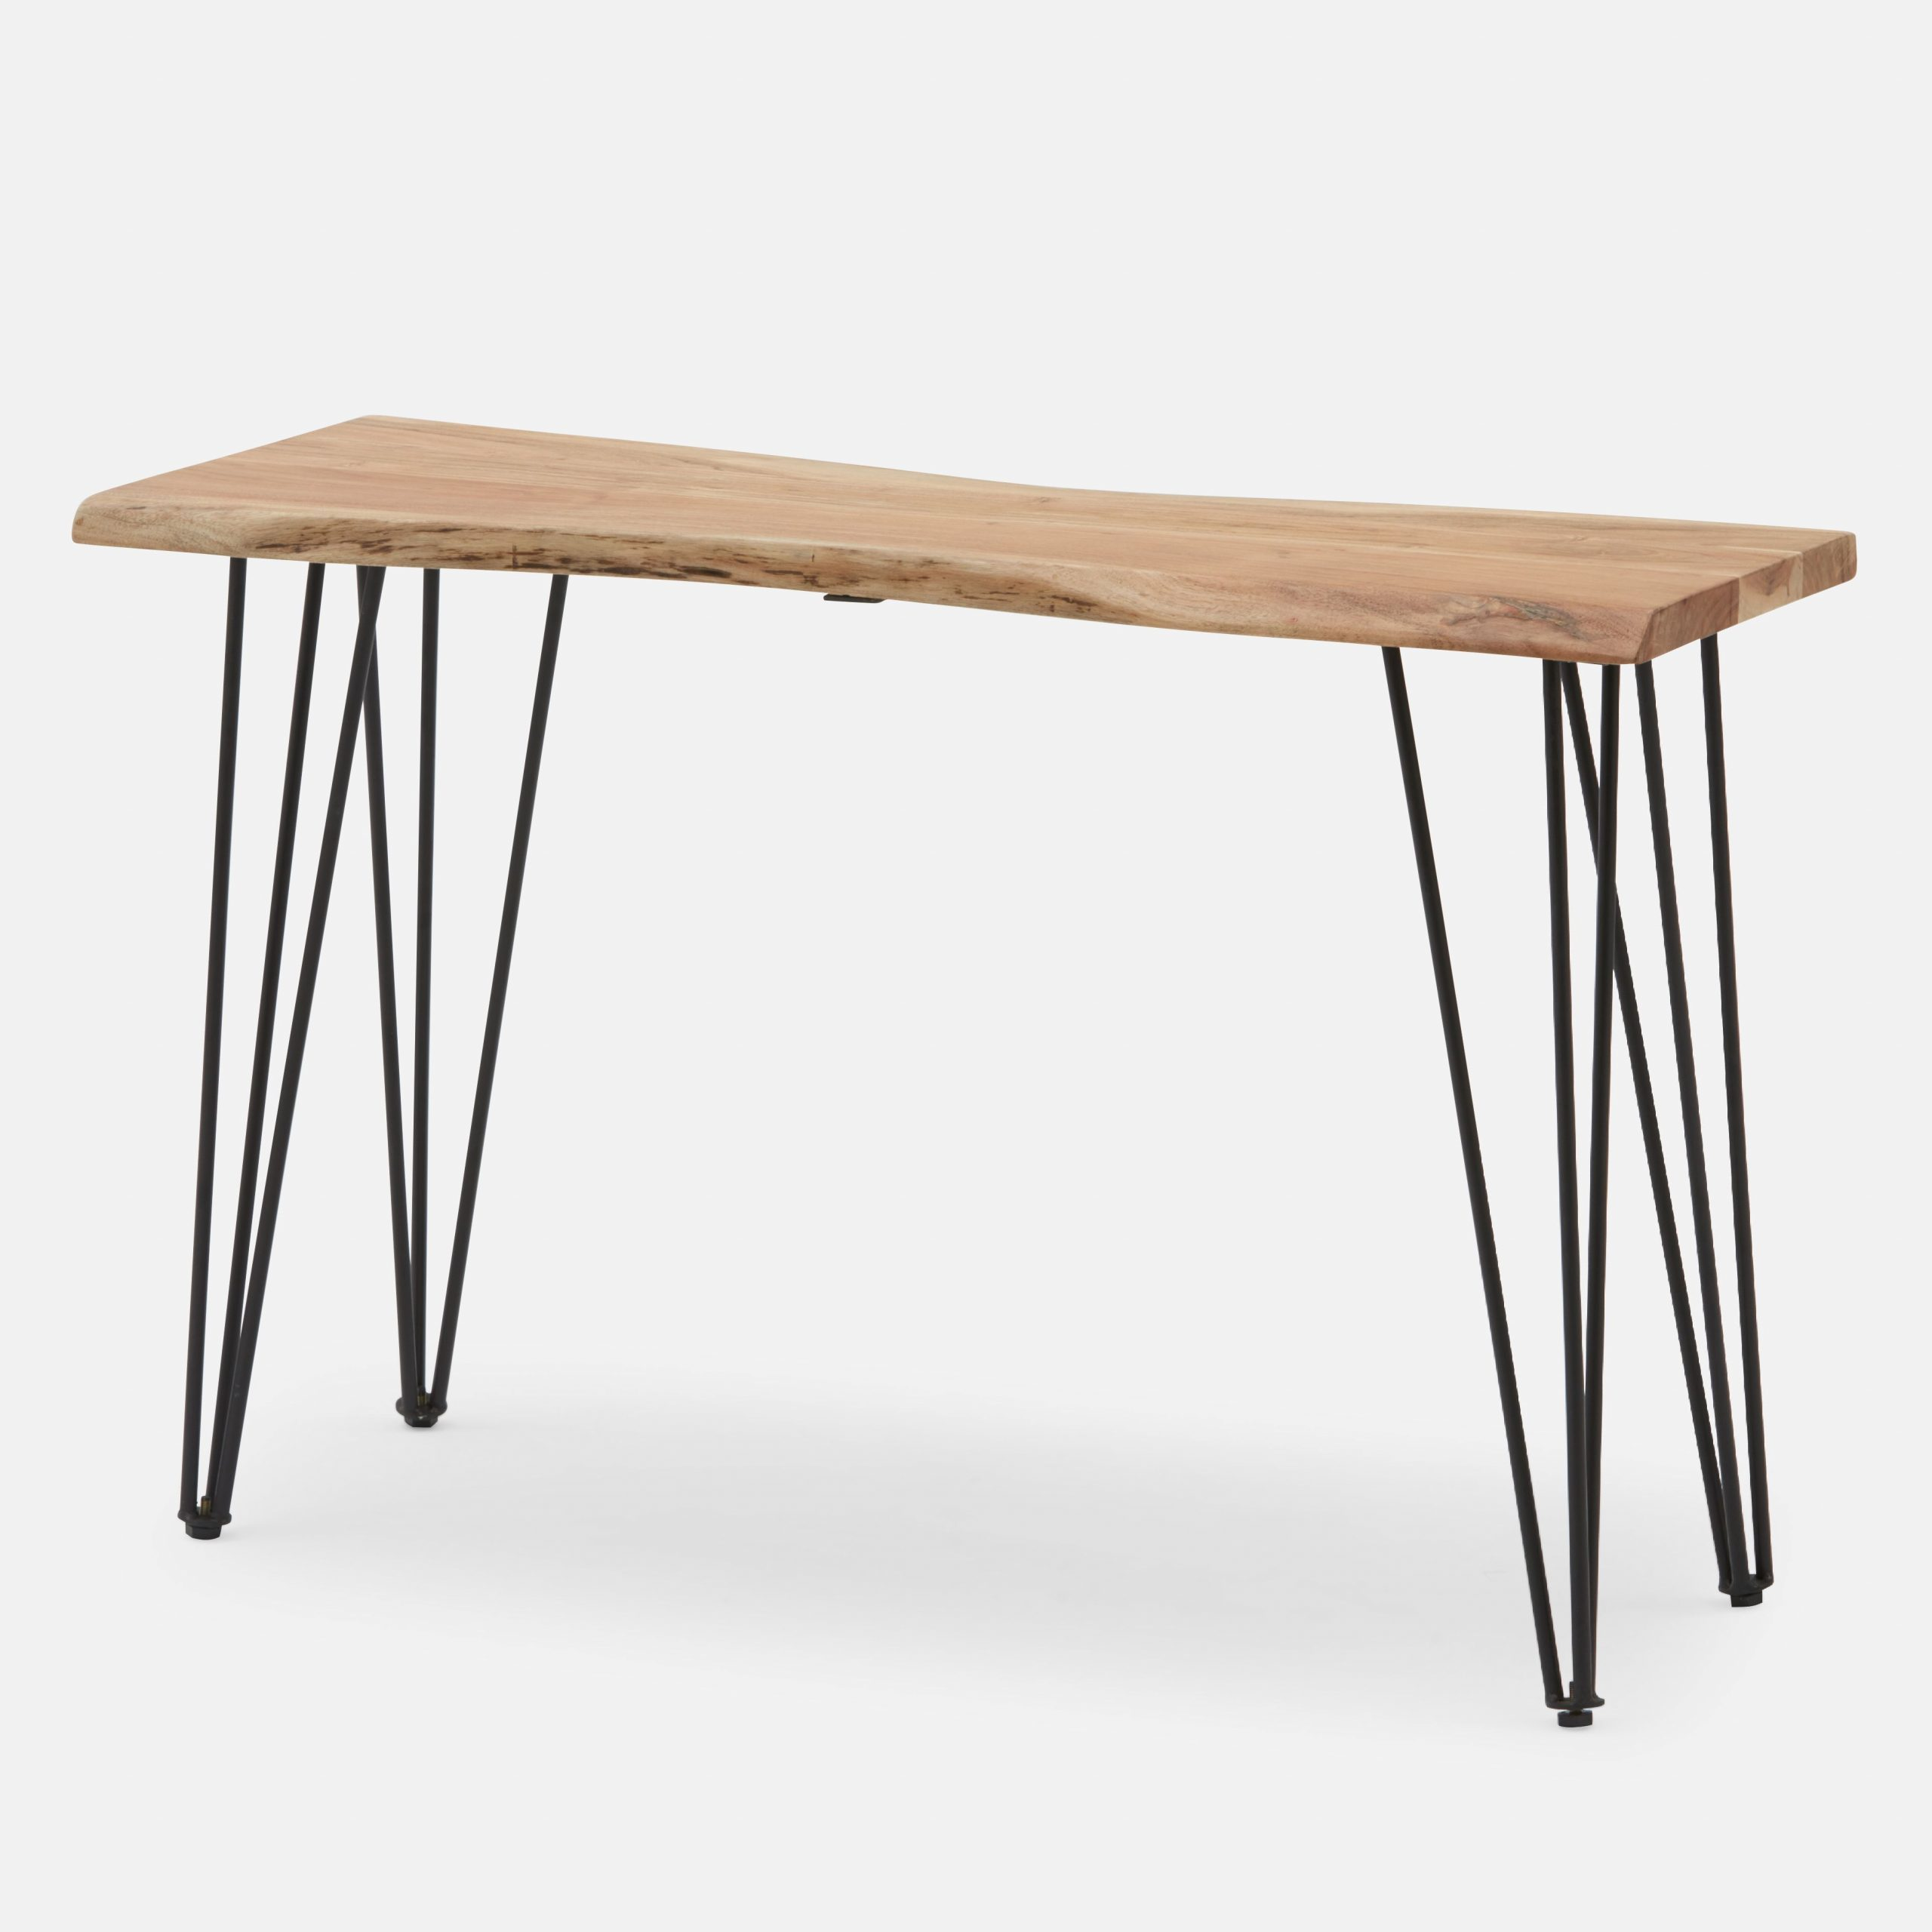 "Acacia Wood Top Dining Tables With Iron Legs On Raw Metal Within 2020 Solid Acacia Wood Console Table 120Cm (47"") (View 18 of 25)"